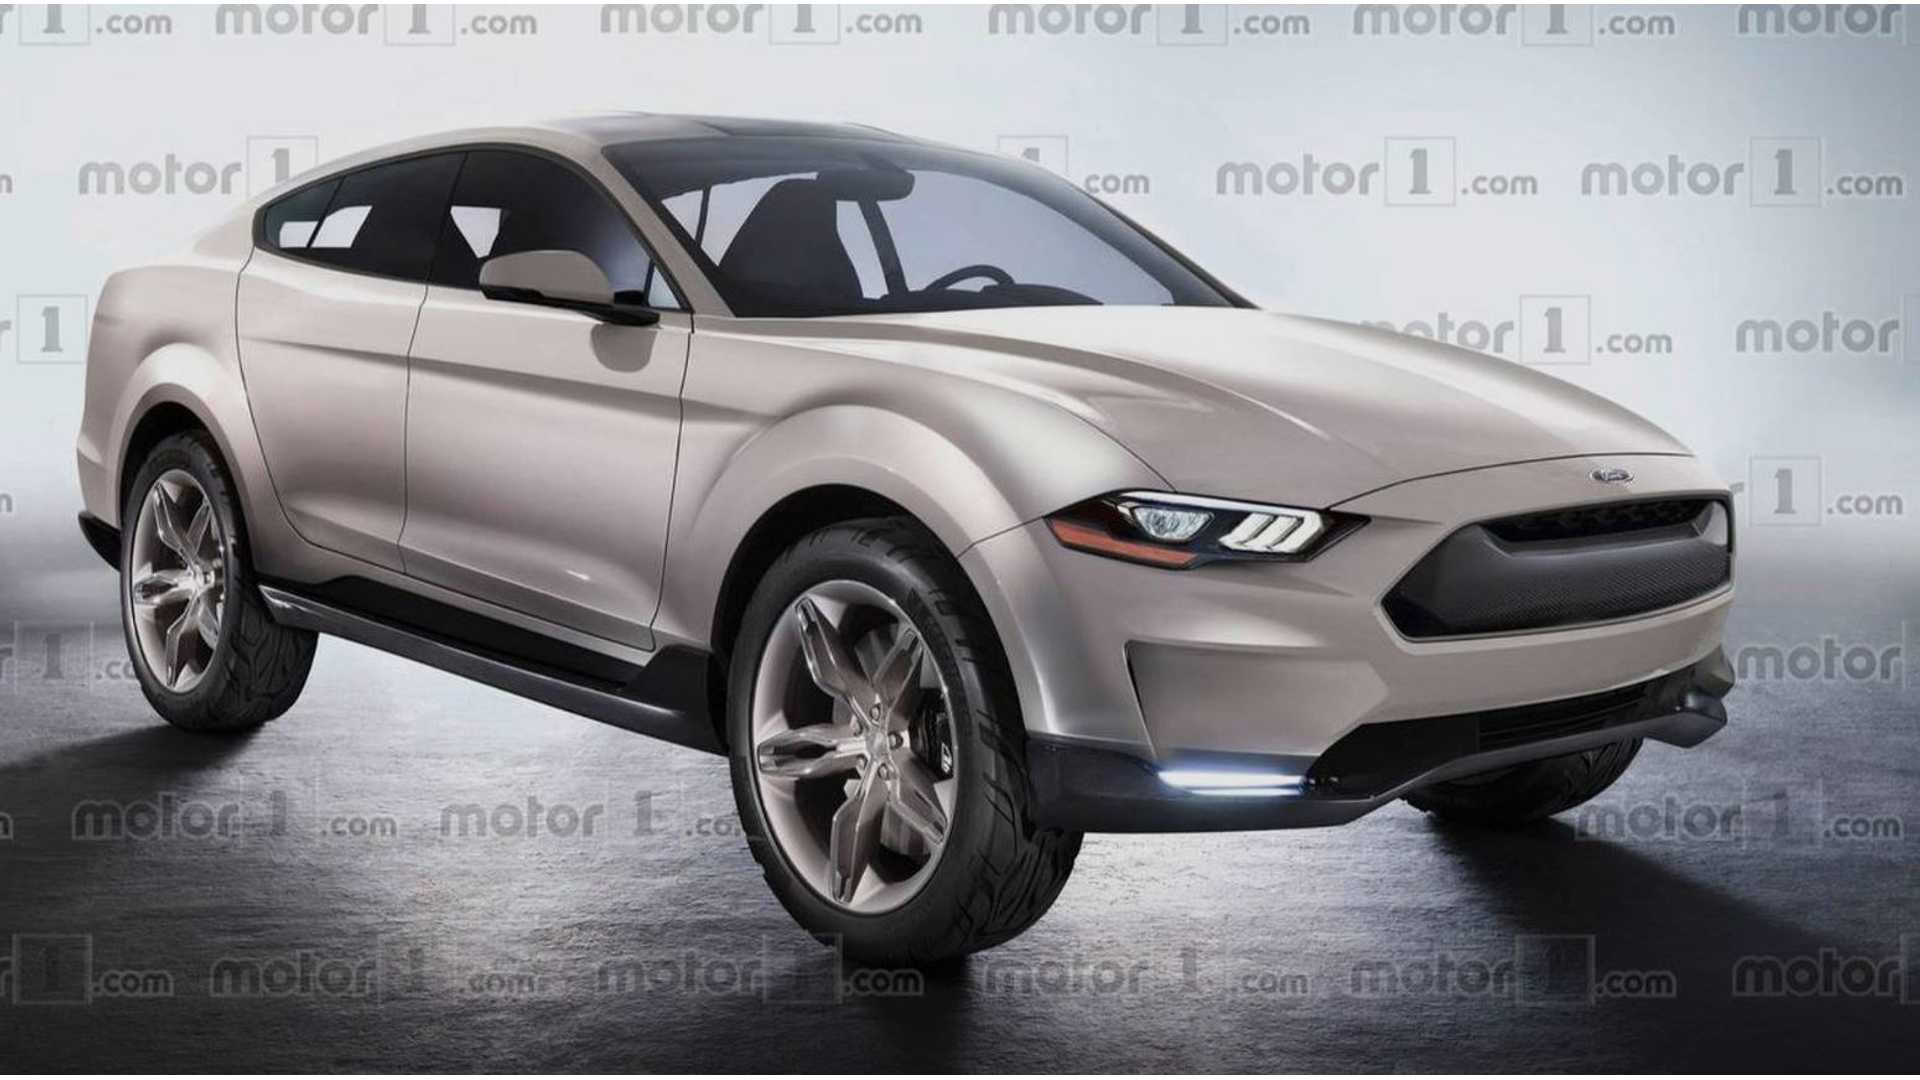 90 Great Ford Ev 2020 Prices for Ford Ev 2020